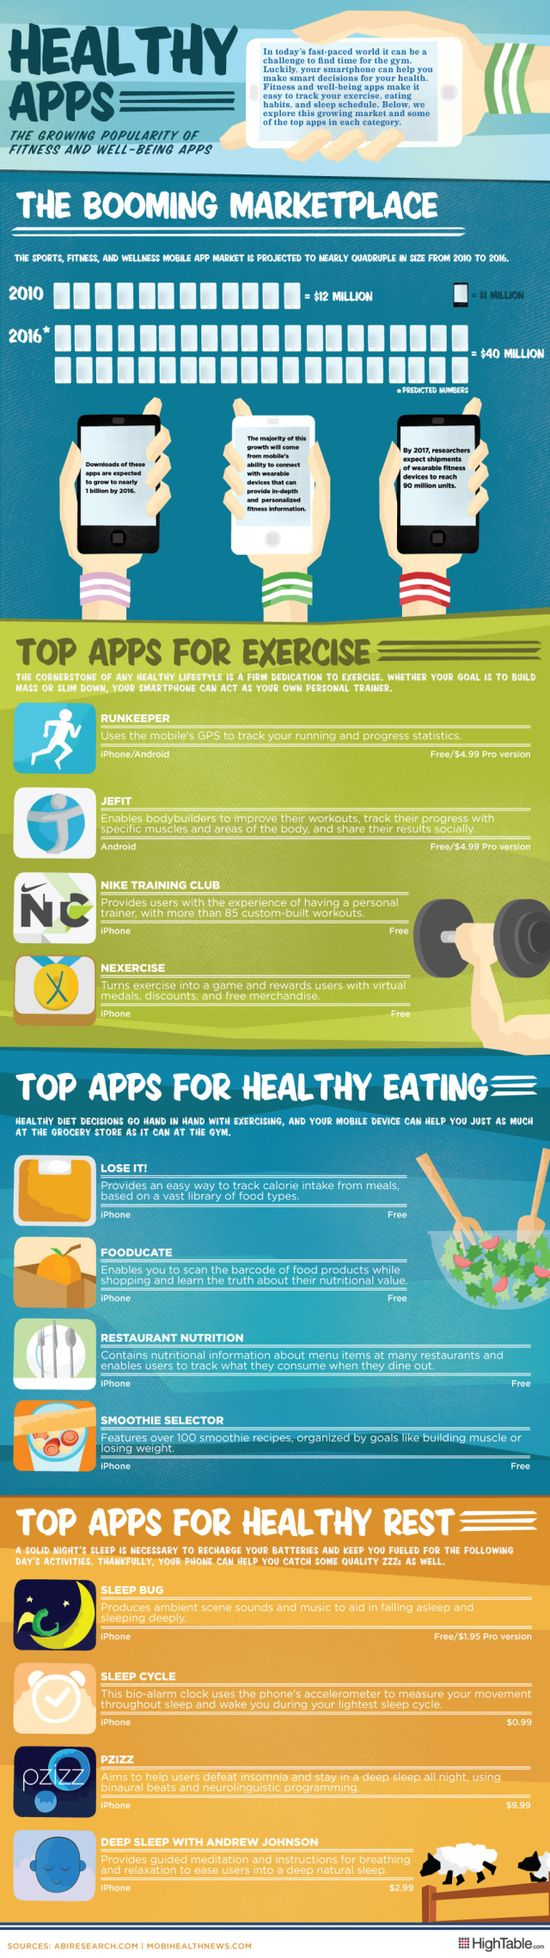 Healthy Apps - Top apps for exercise, healthy eating and healthy rest!